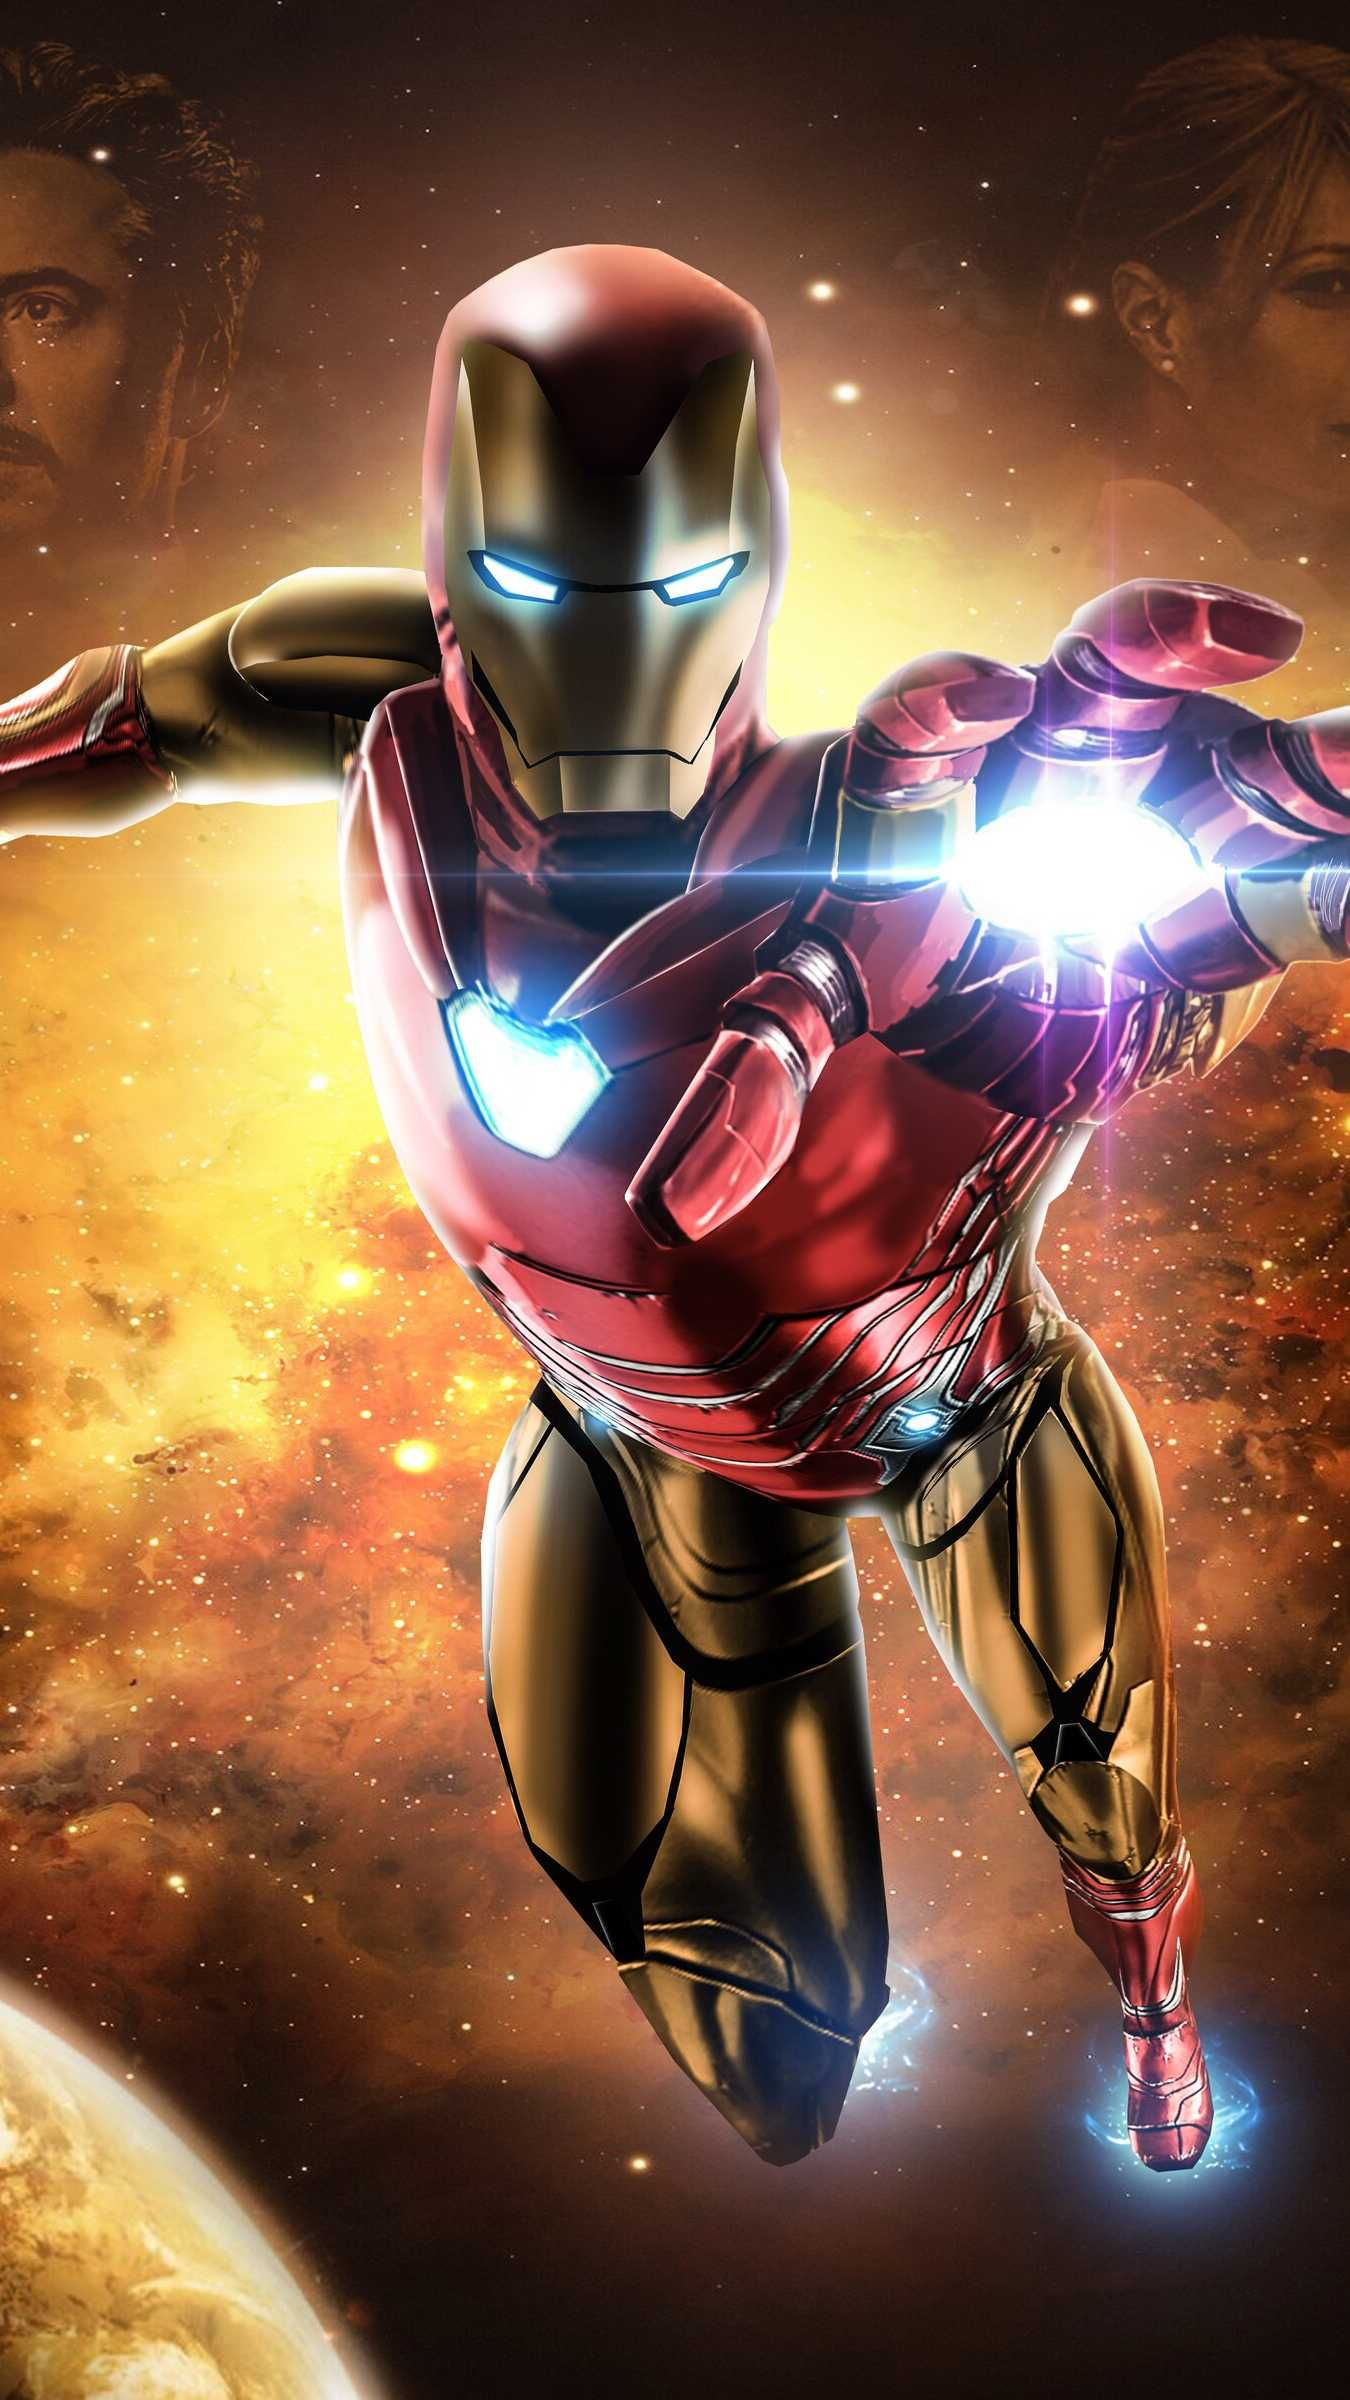 Avengers Endgame Iron Man Mark 85 Armor Space Iphone Wallpaper Iron Man Wallpaper Iron Man Art Iron Man